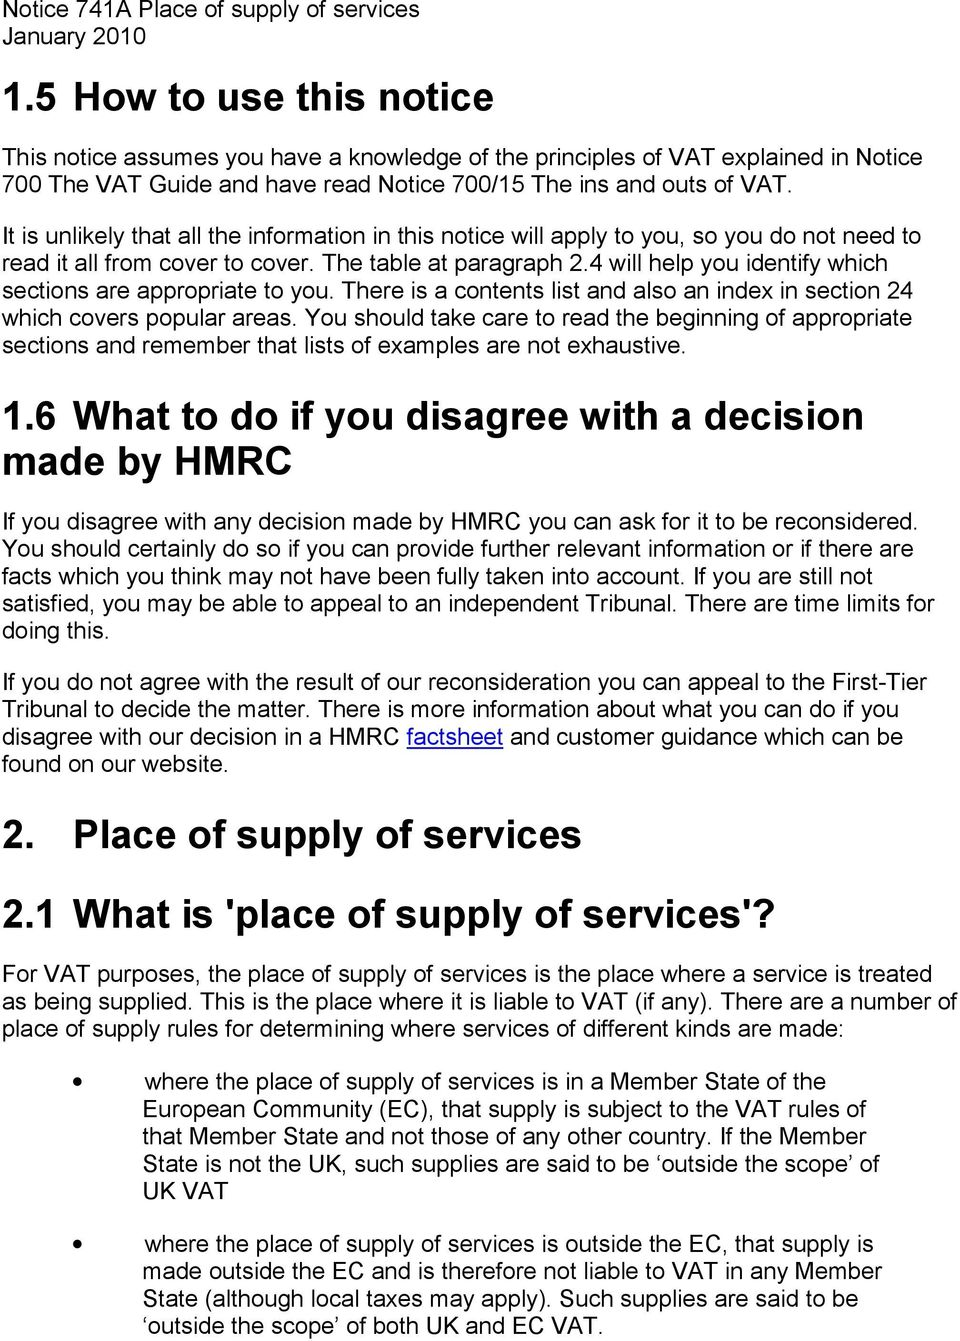 Other notices on this or related subjects pdf free download.